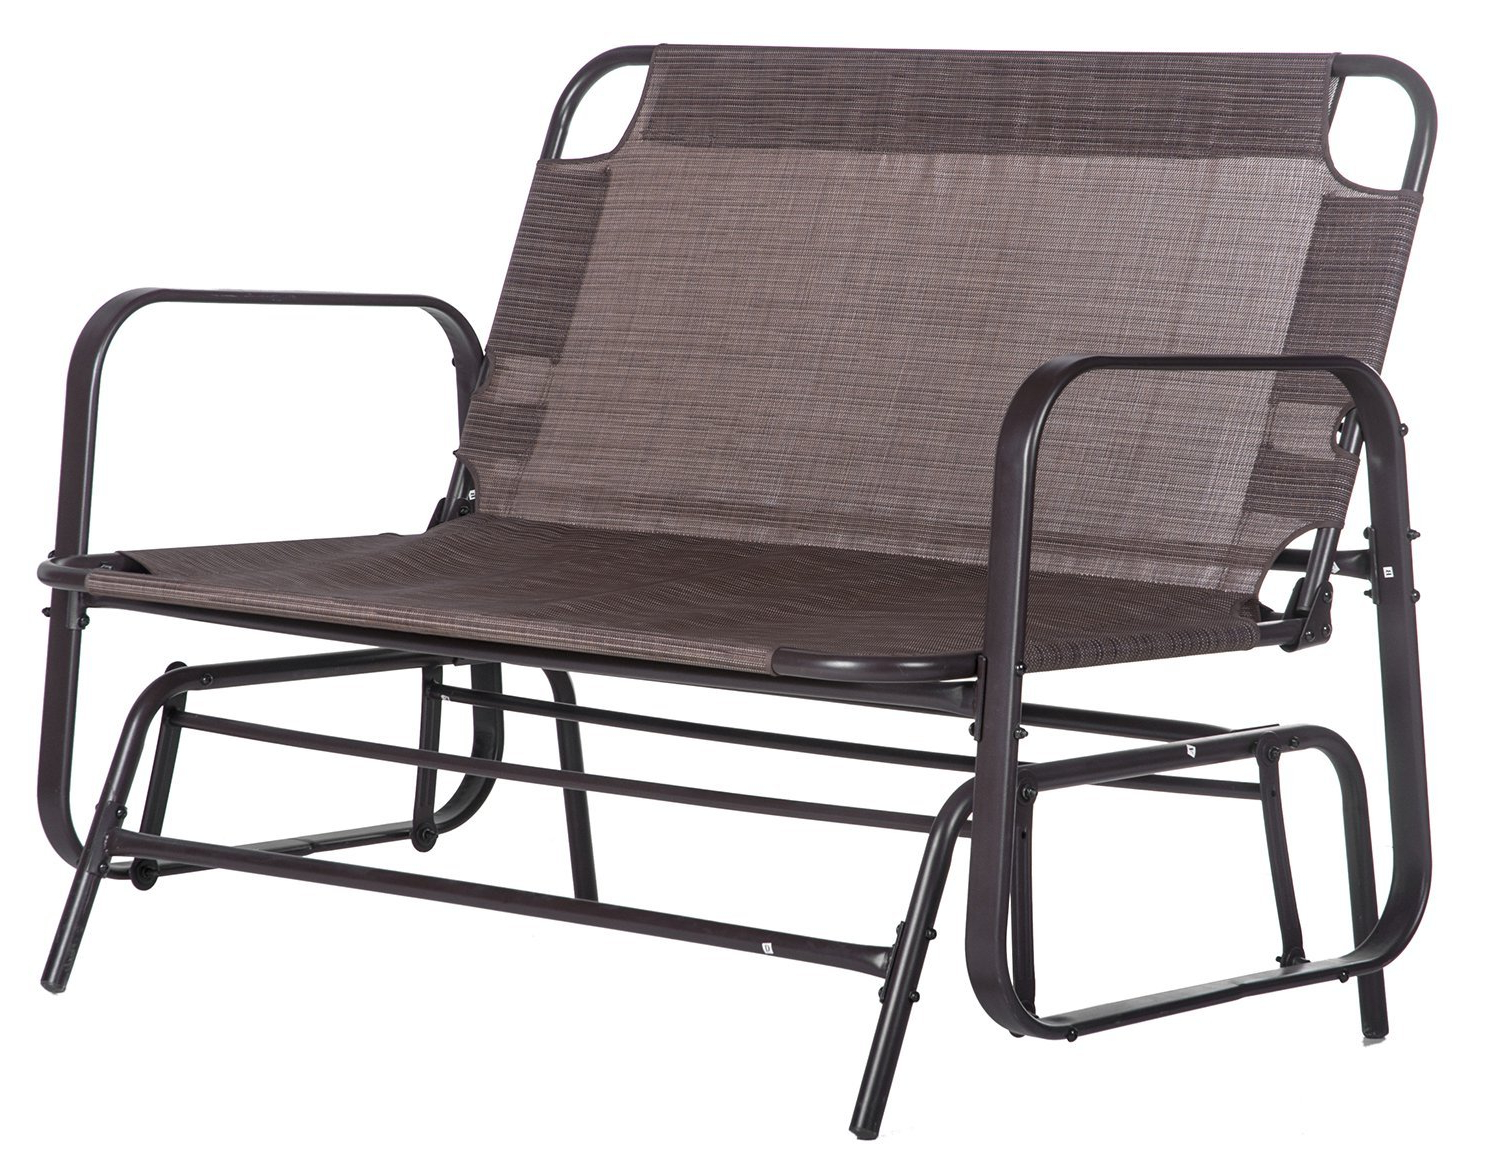 Most Recently Released Loveseat Glider Benches With Cushions Throughout Buy Merax Patio Loveseat Glider Rocking Chair Garden Outdoor (Gallery 8 of 30)